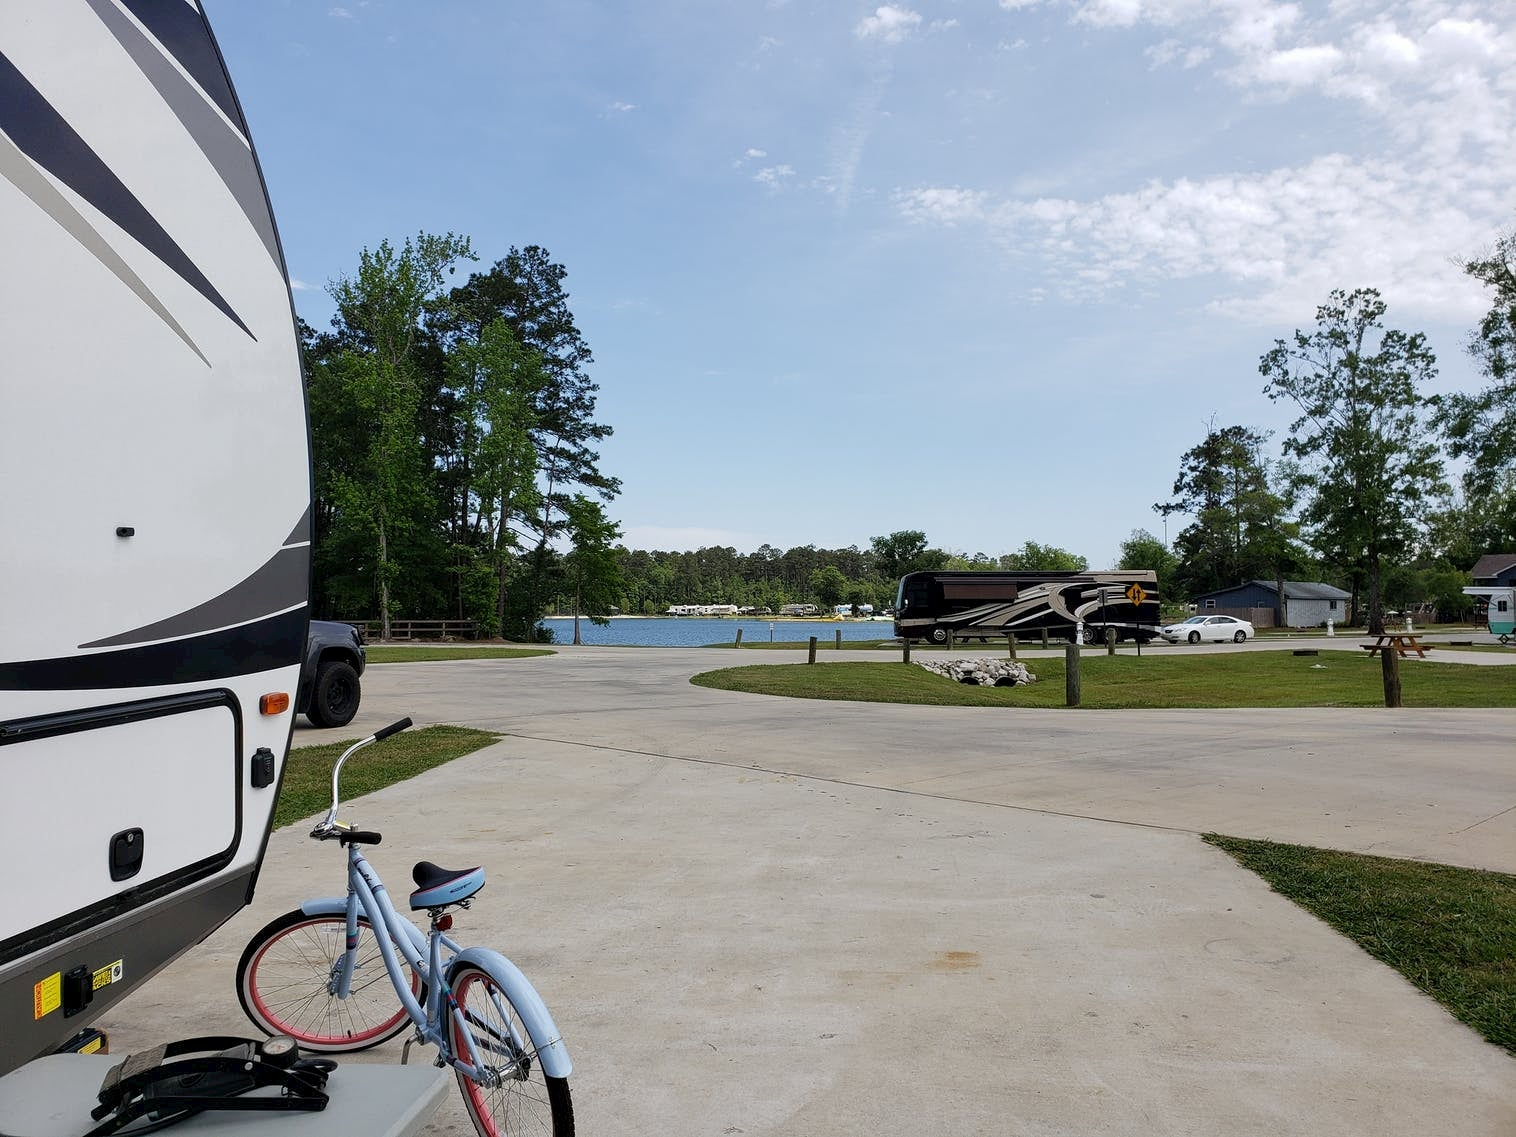 RV with beach cruiser bike on the back at RV park with lake.